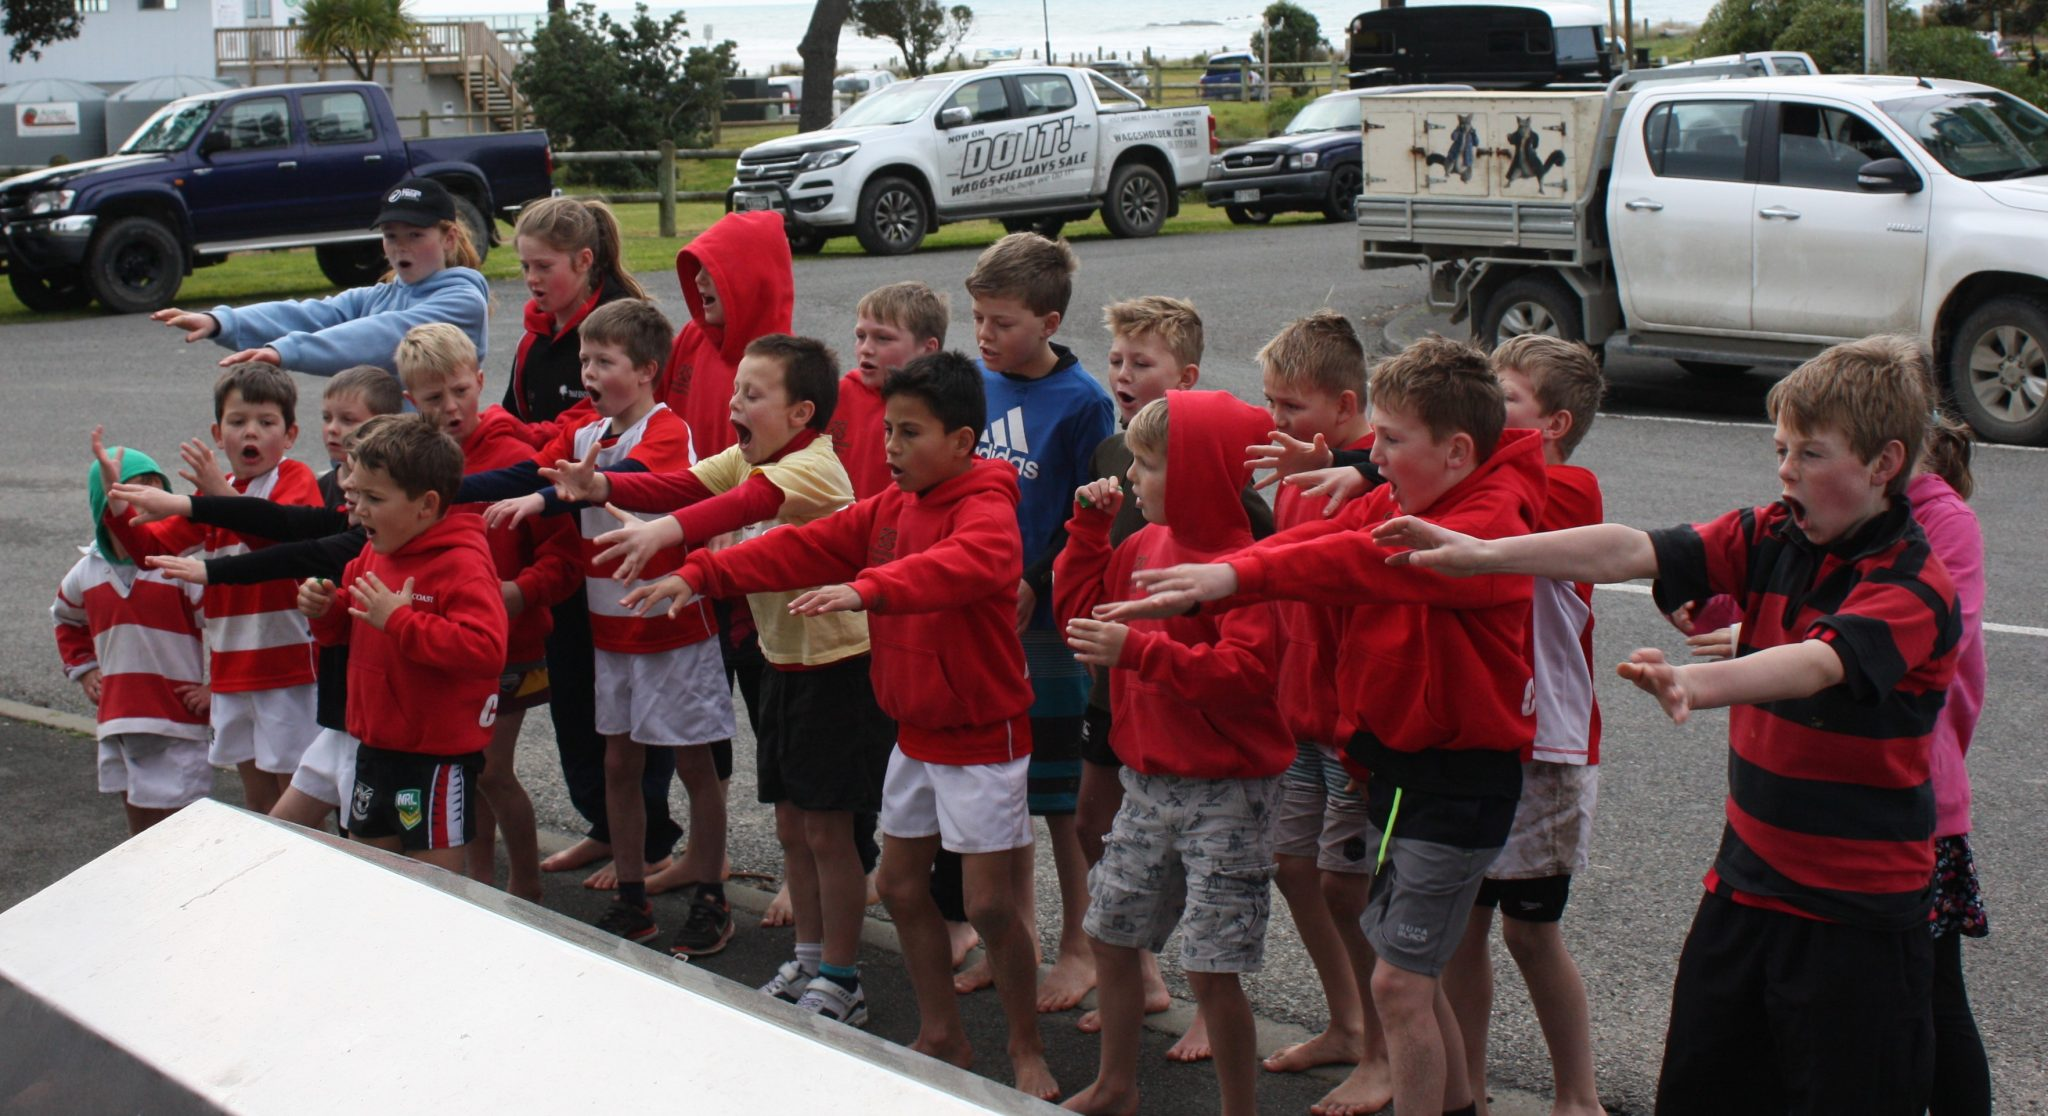 East Coast Junior All Blacks showed their respect for the Wairarapa-Bush team with a haka. PHOTO/KJ LIDDLE